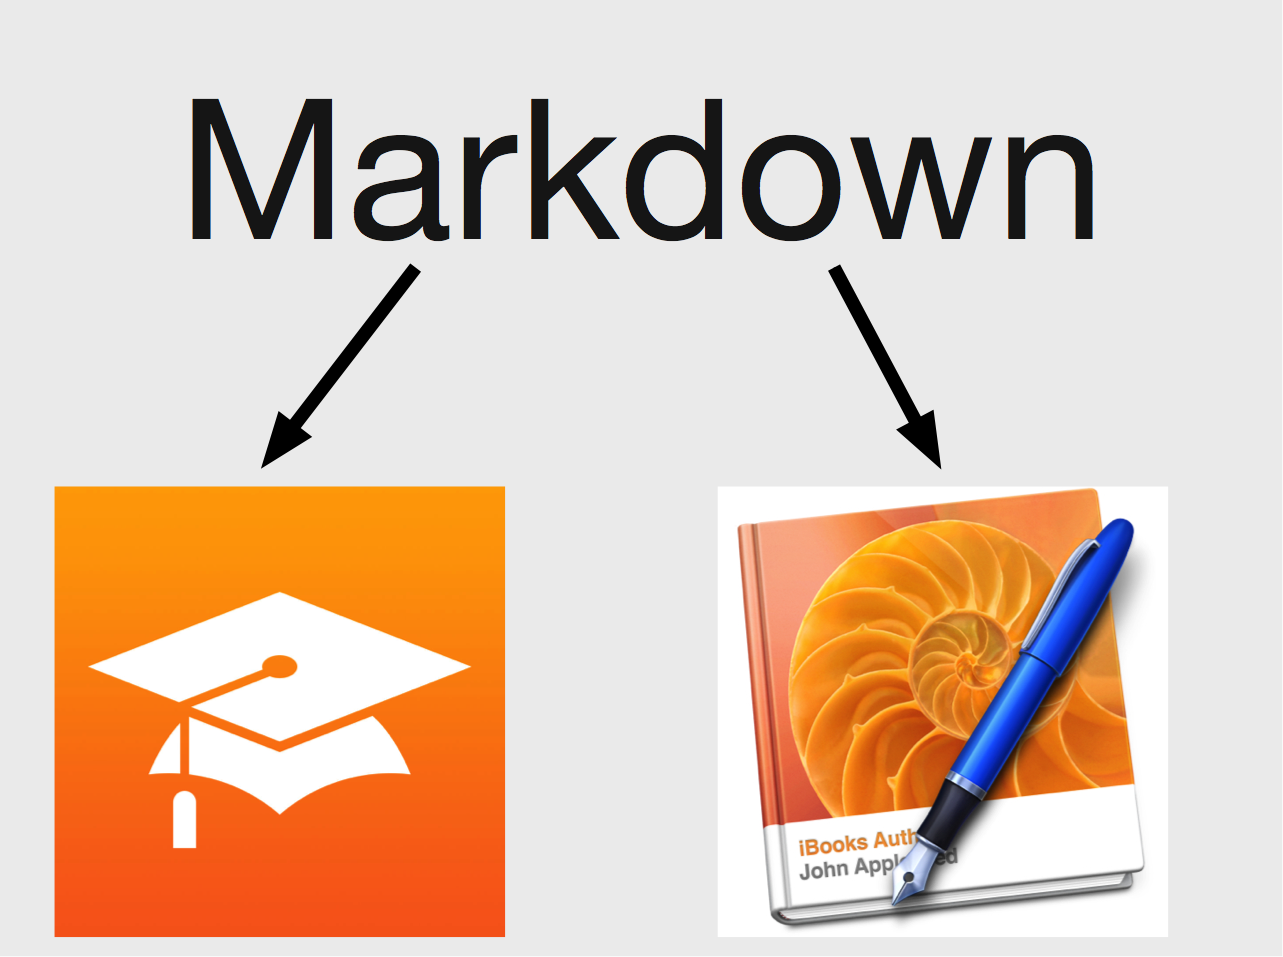 Workflow — Markdown to iBooks Author or iTunes U - Automating iPad